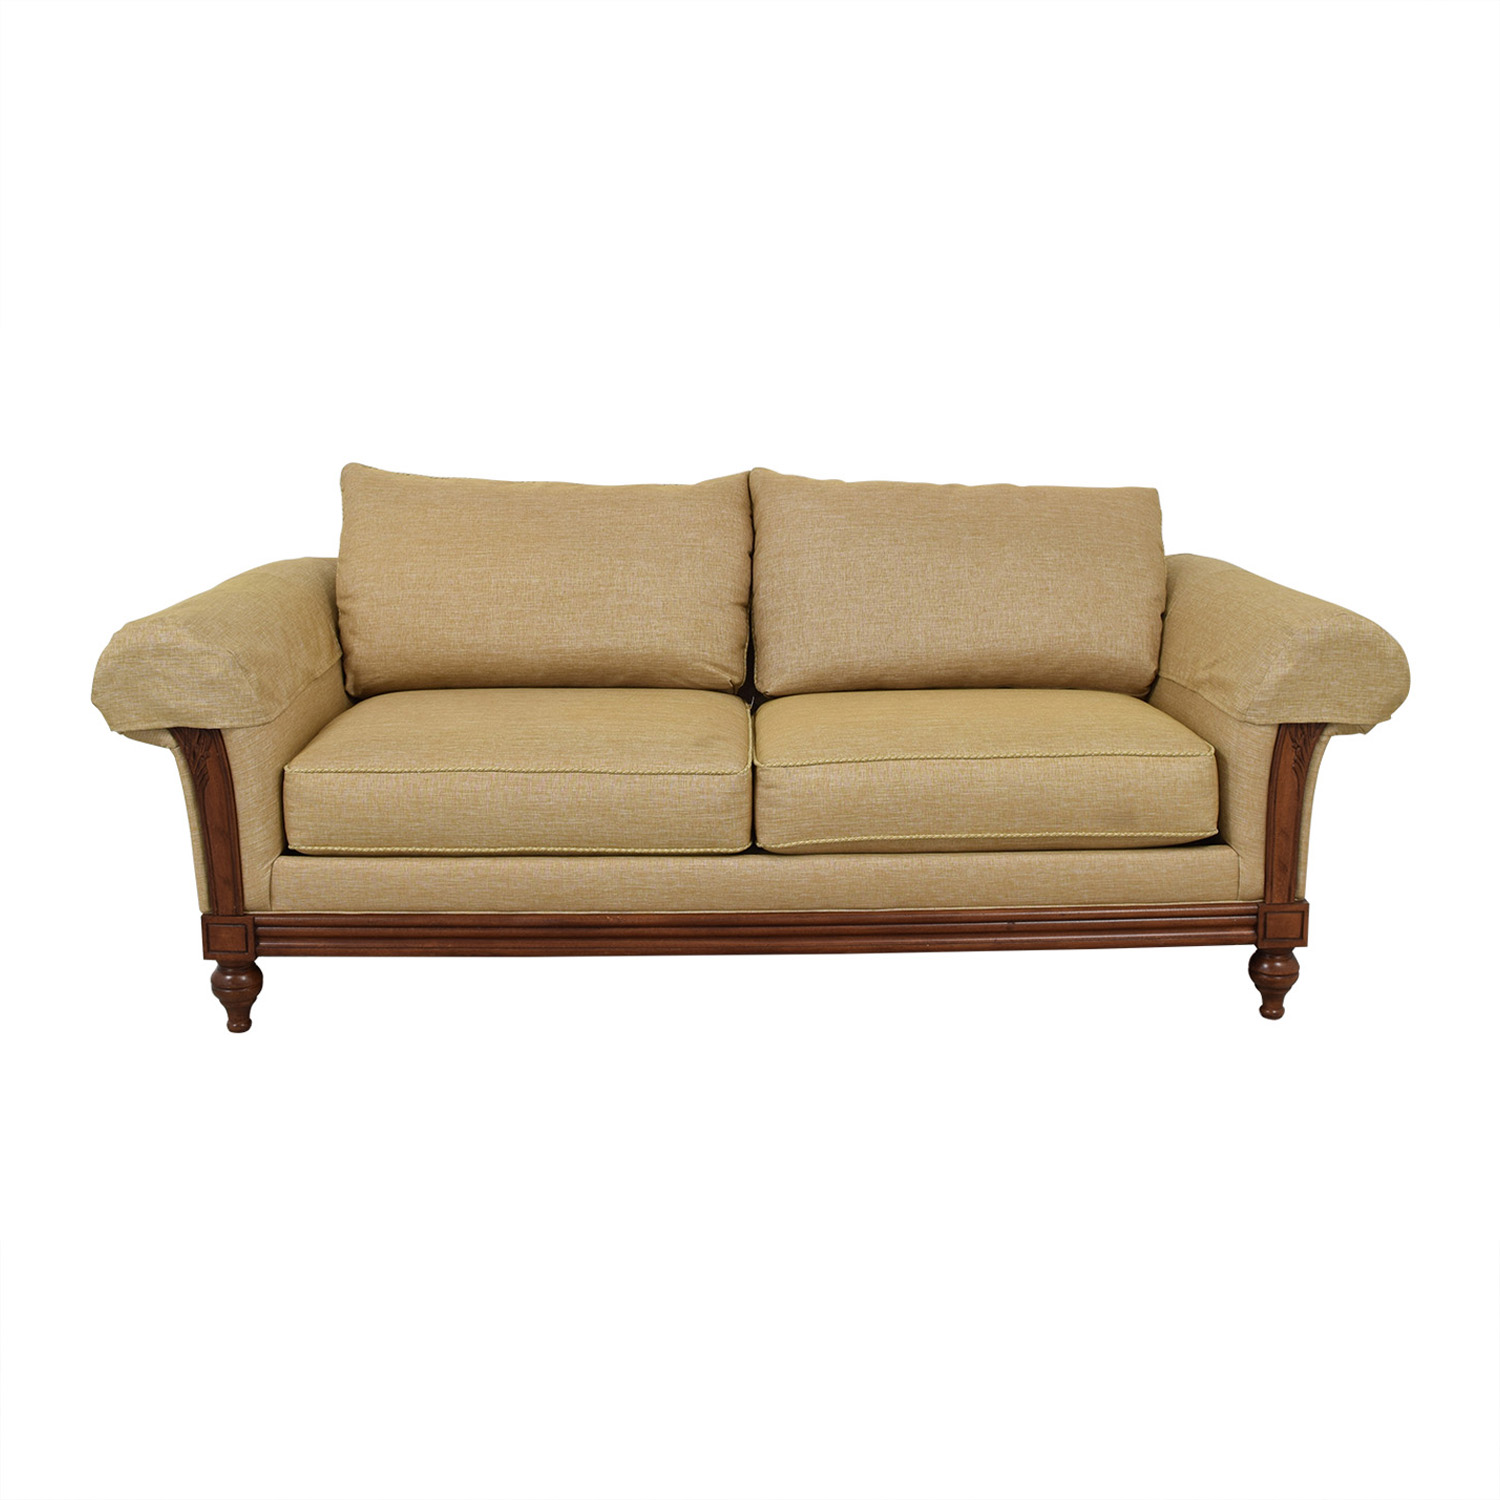 Ethan Allen Ethan Allen Upholstered Loveseat on sale